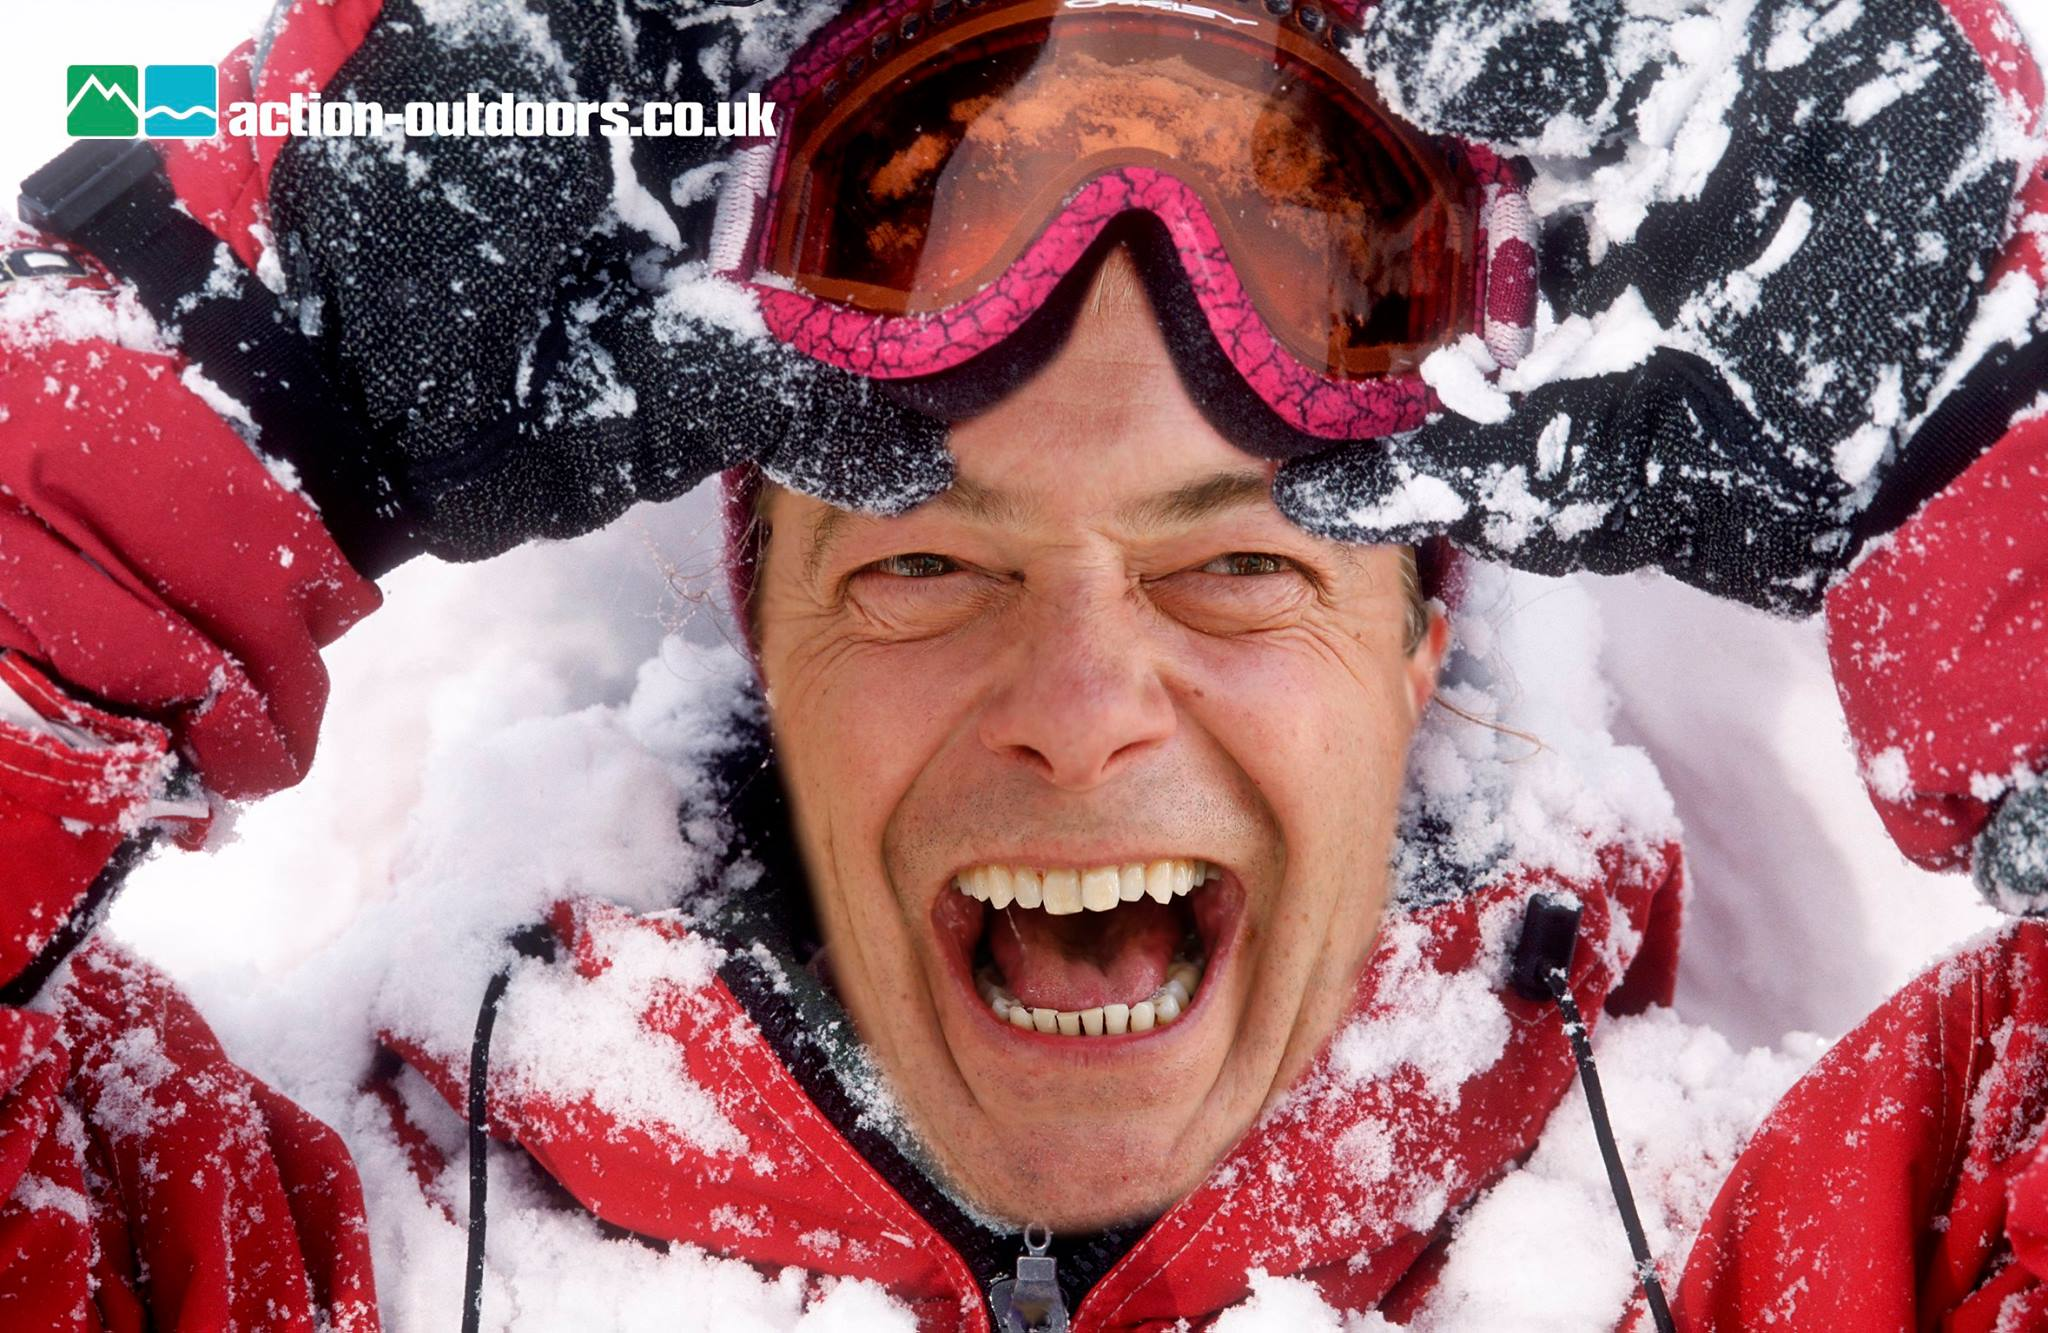 Despite a number of falls and snow right down his back, Farage appeared to enjoy his time away in the Alps